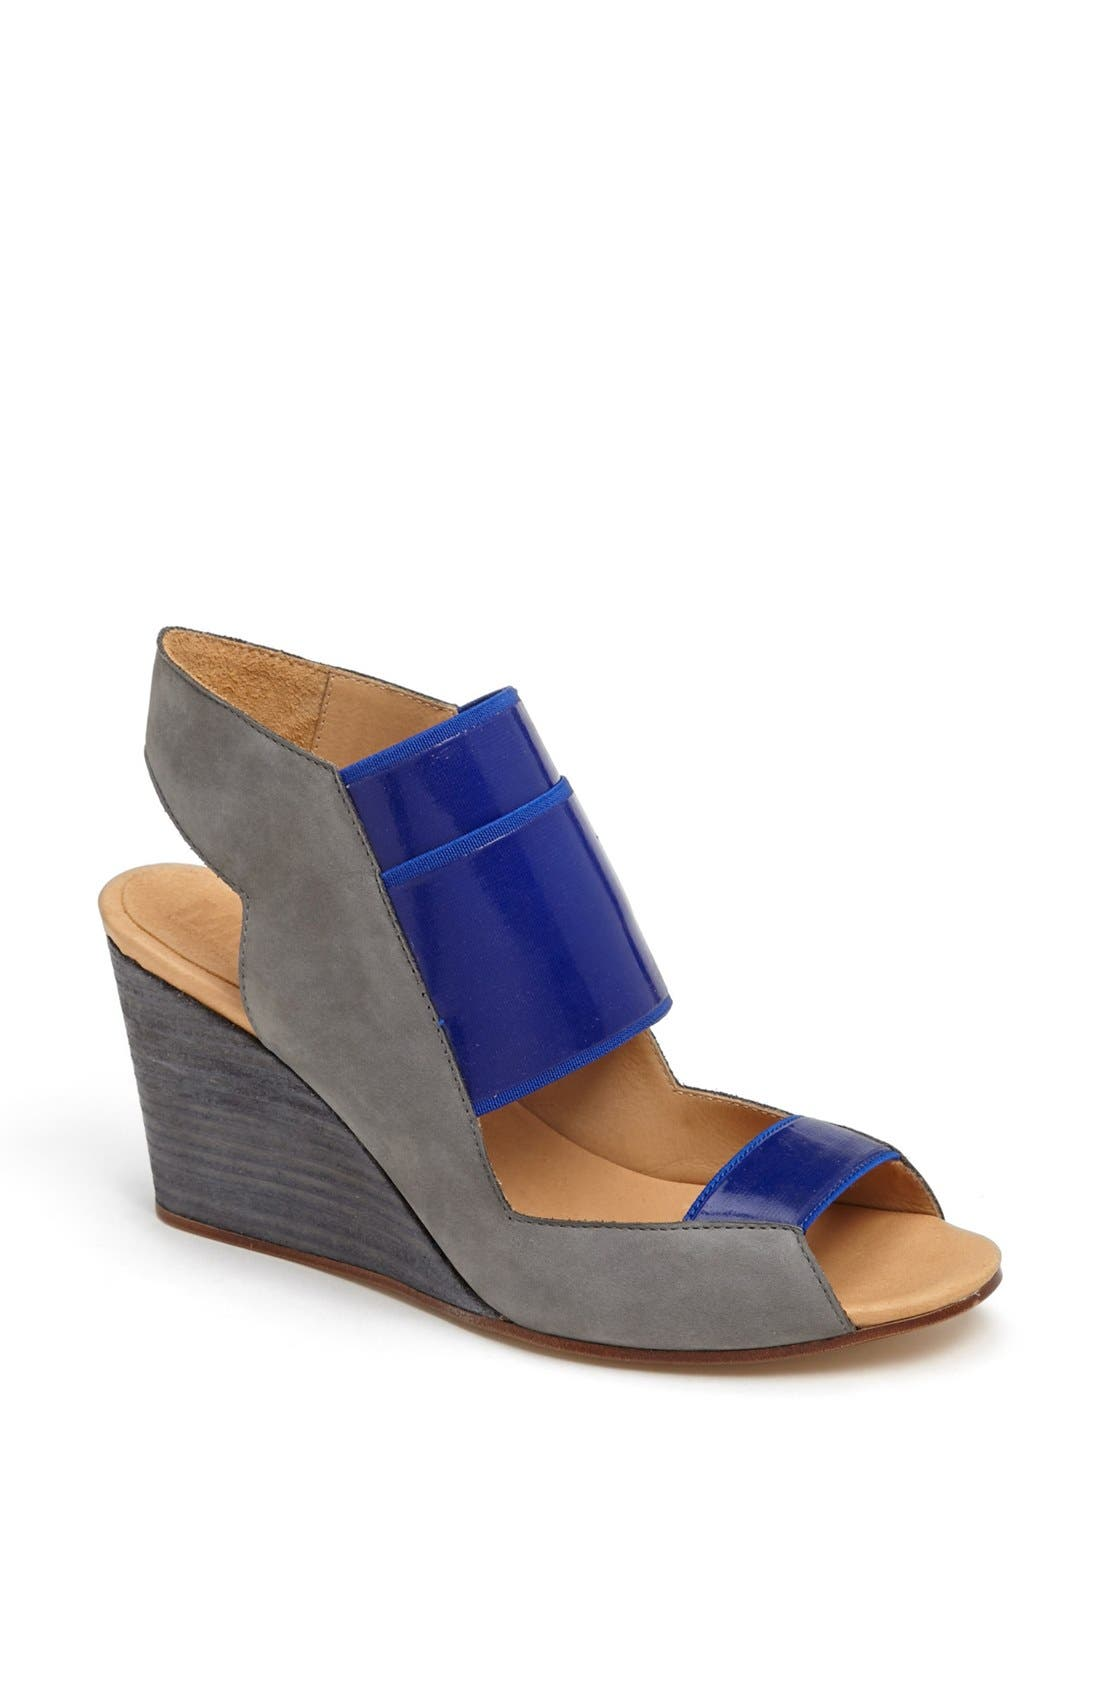 Main Image - MM6 Maison Margiela Wedge Sandal